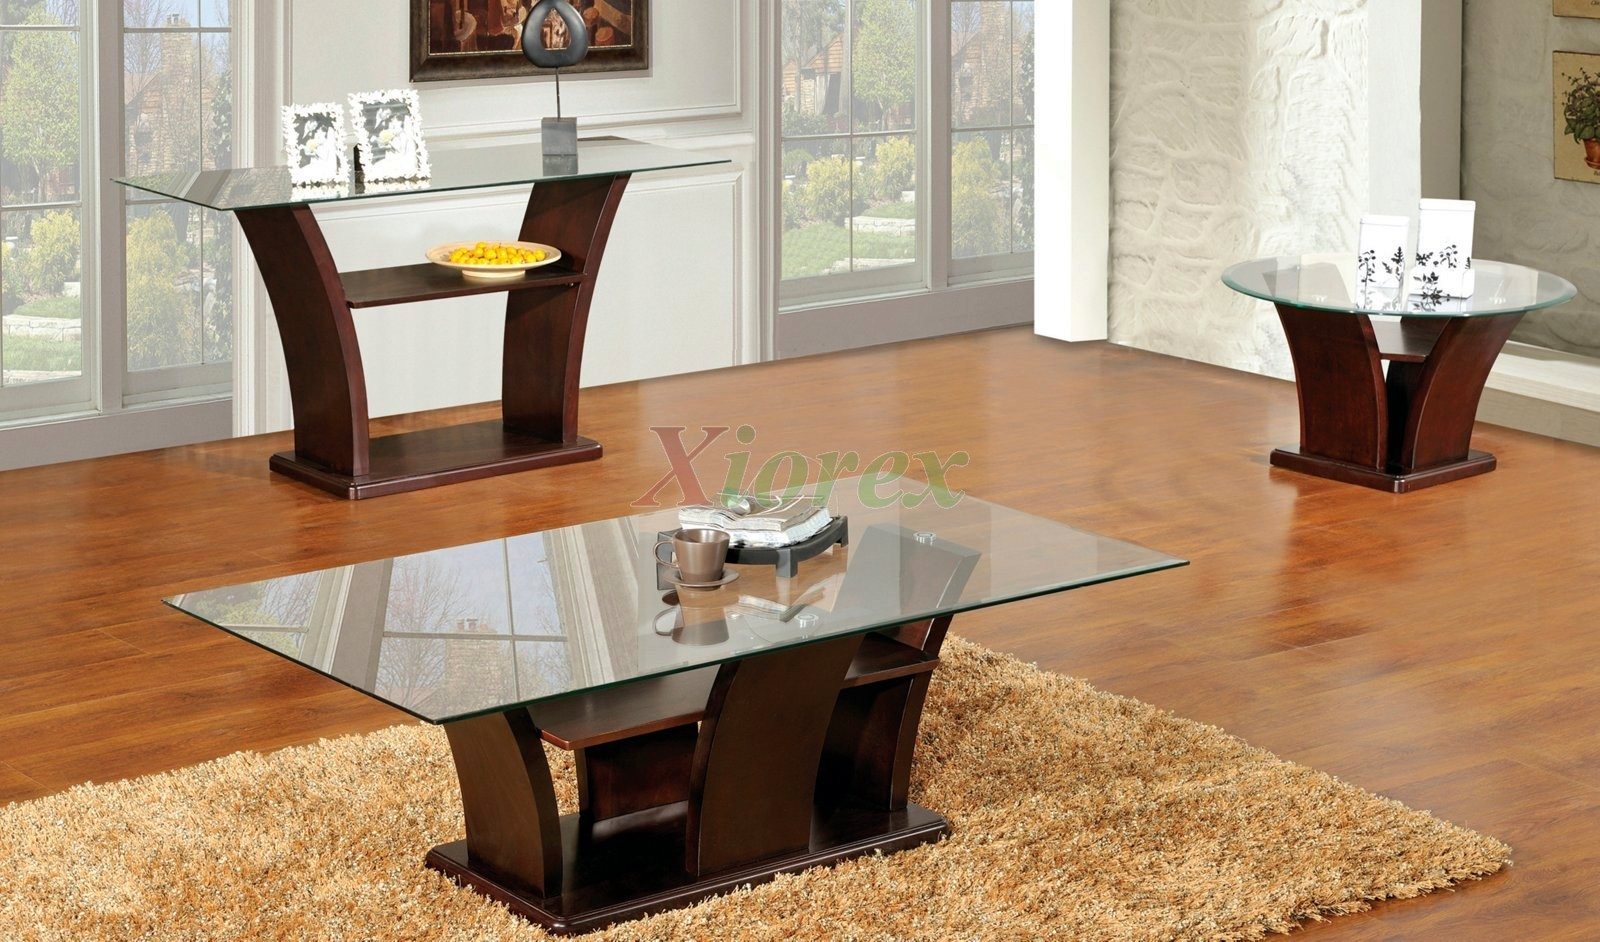 glass top coffee tables xiorex furniture stores rh xiorex com living room glass coffee table set living room glass coffee table set